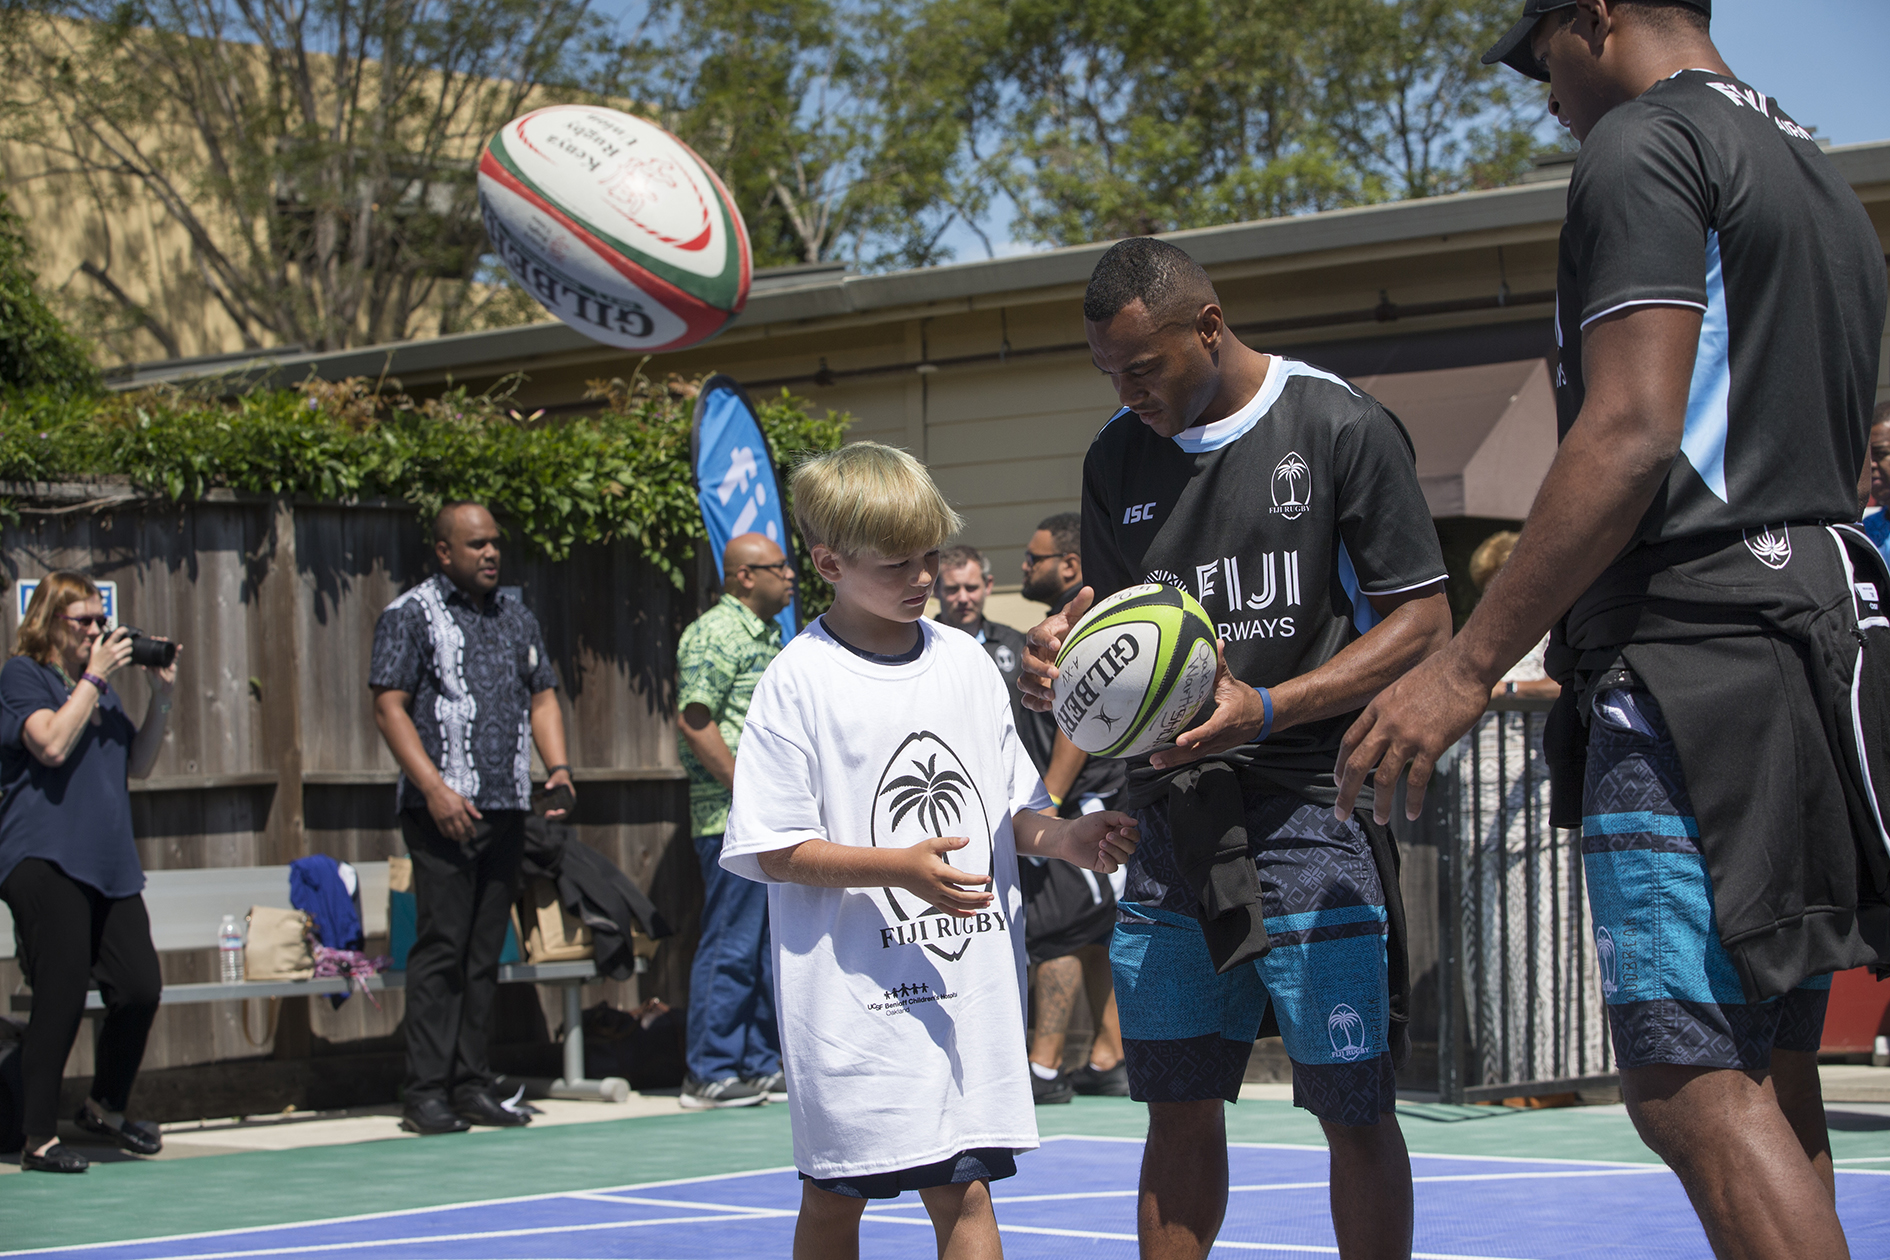 Fiji Airways Fijian 7s rep Alasio Naduva teaching a young fan Brody Tatman how to pass at UCSF Benioff Children's Hospital in Oakland on July 19, 2018.   Photo:  Zimbio